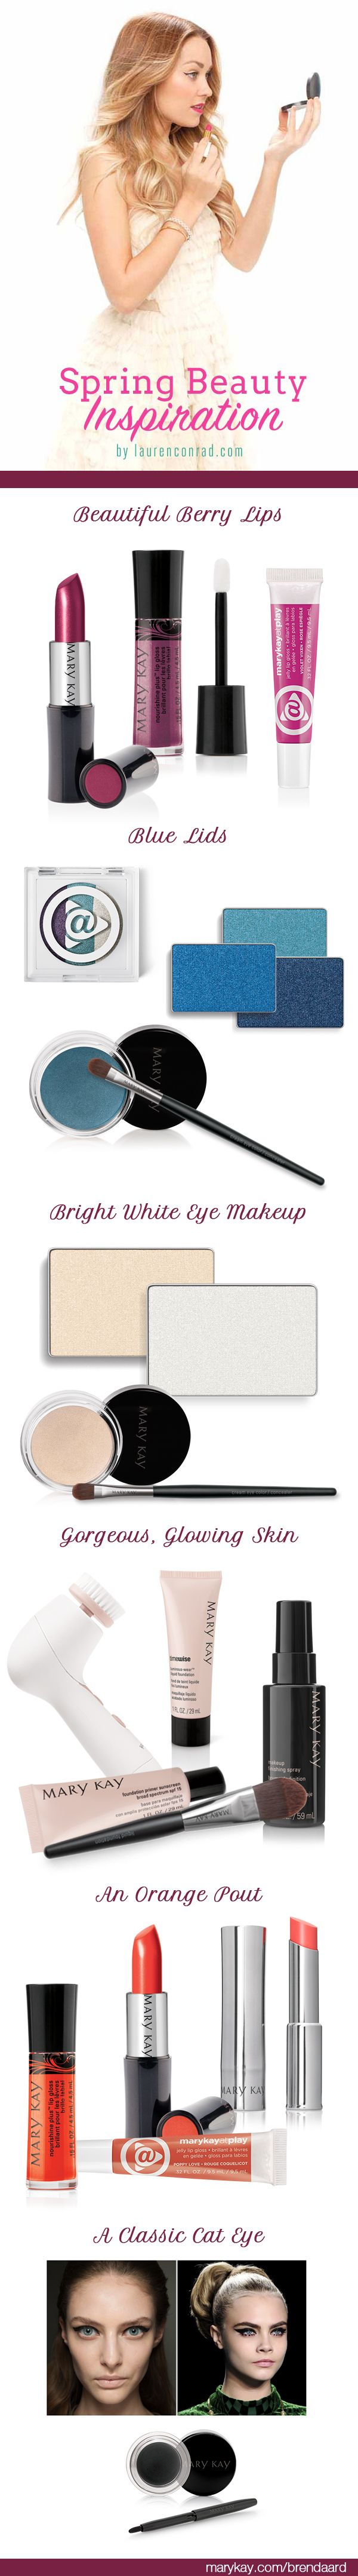 NEW, FRESH Trends from LC and how to get them with Mary Kay cosmetics and skin care items. http://www.marykay.com/melanielathum